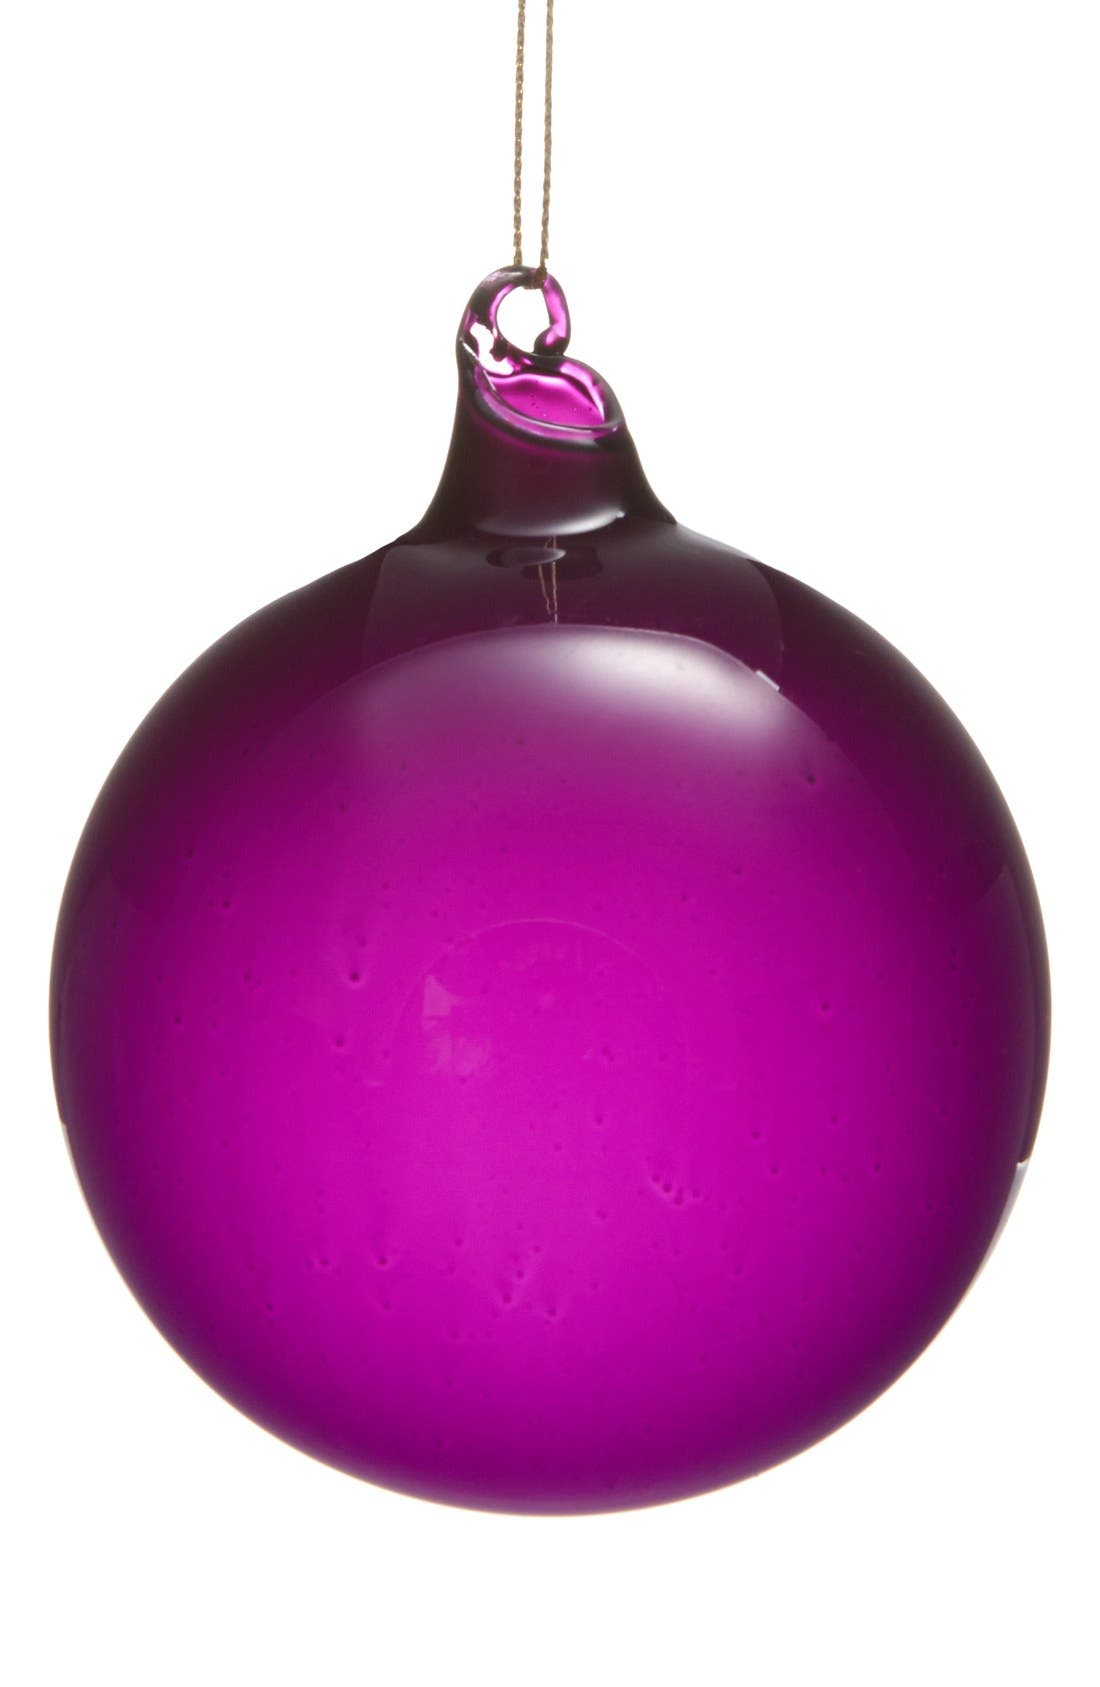 Alternate Image 1 Selected - Jim Marvin 'Bubblegum Ball' Ornaments (Set of 6)